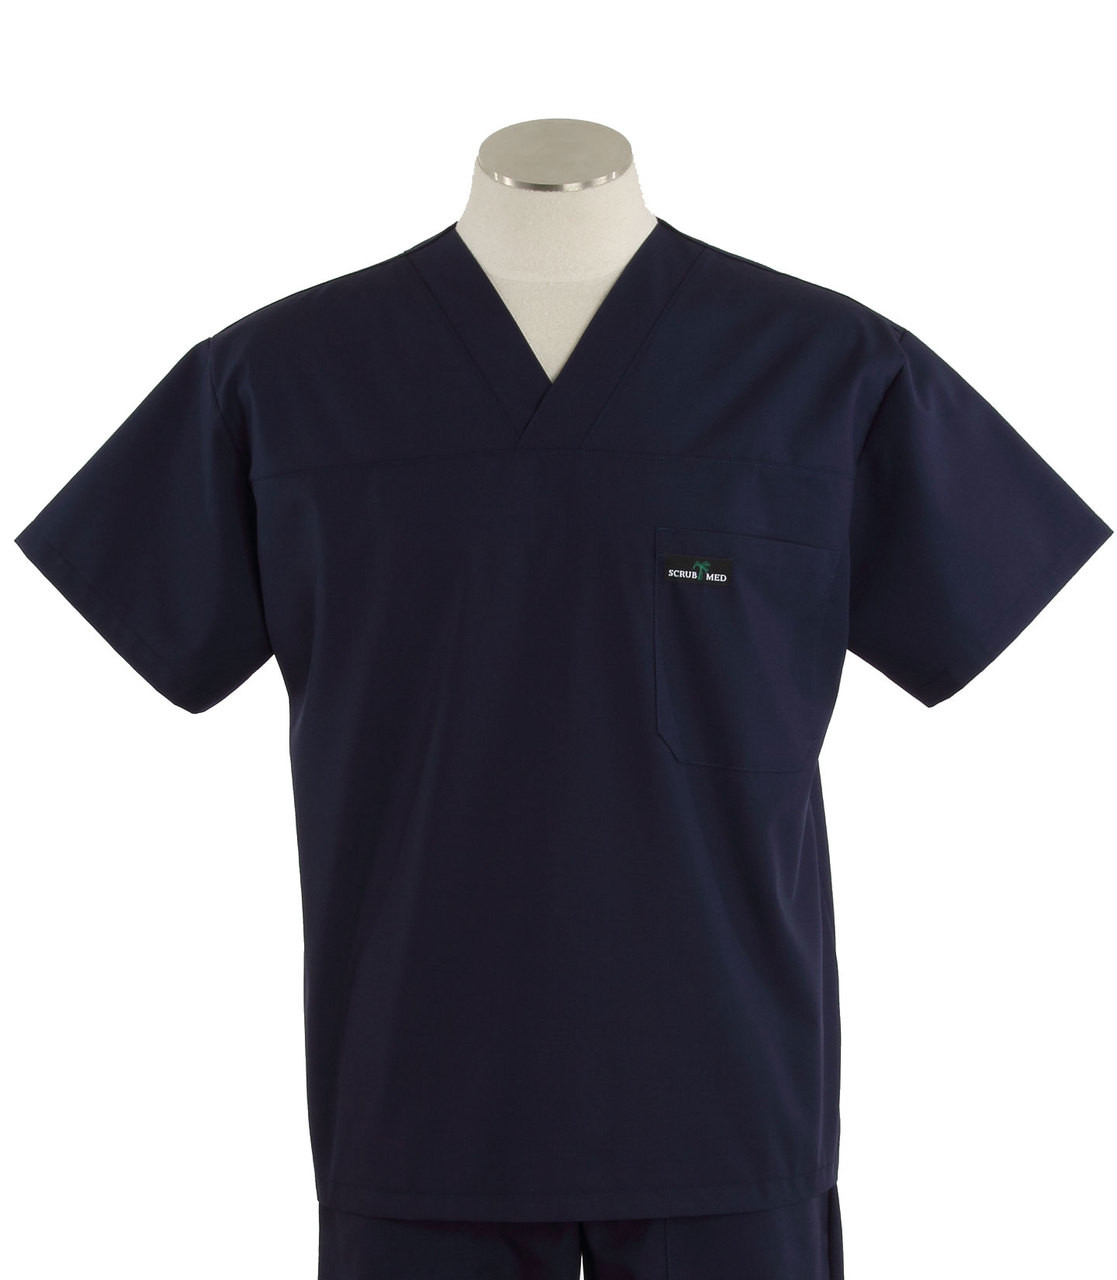 Scrub Med Mens Solid V-Neck Scrub Top Navy - Scrub Med